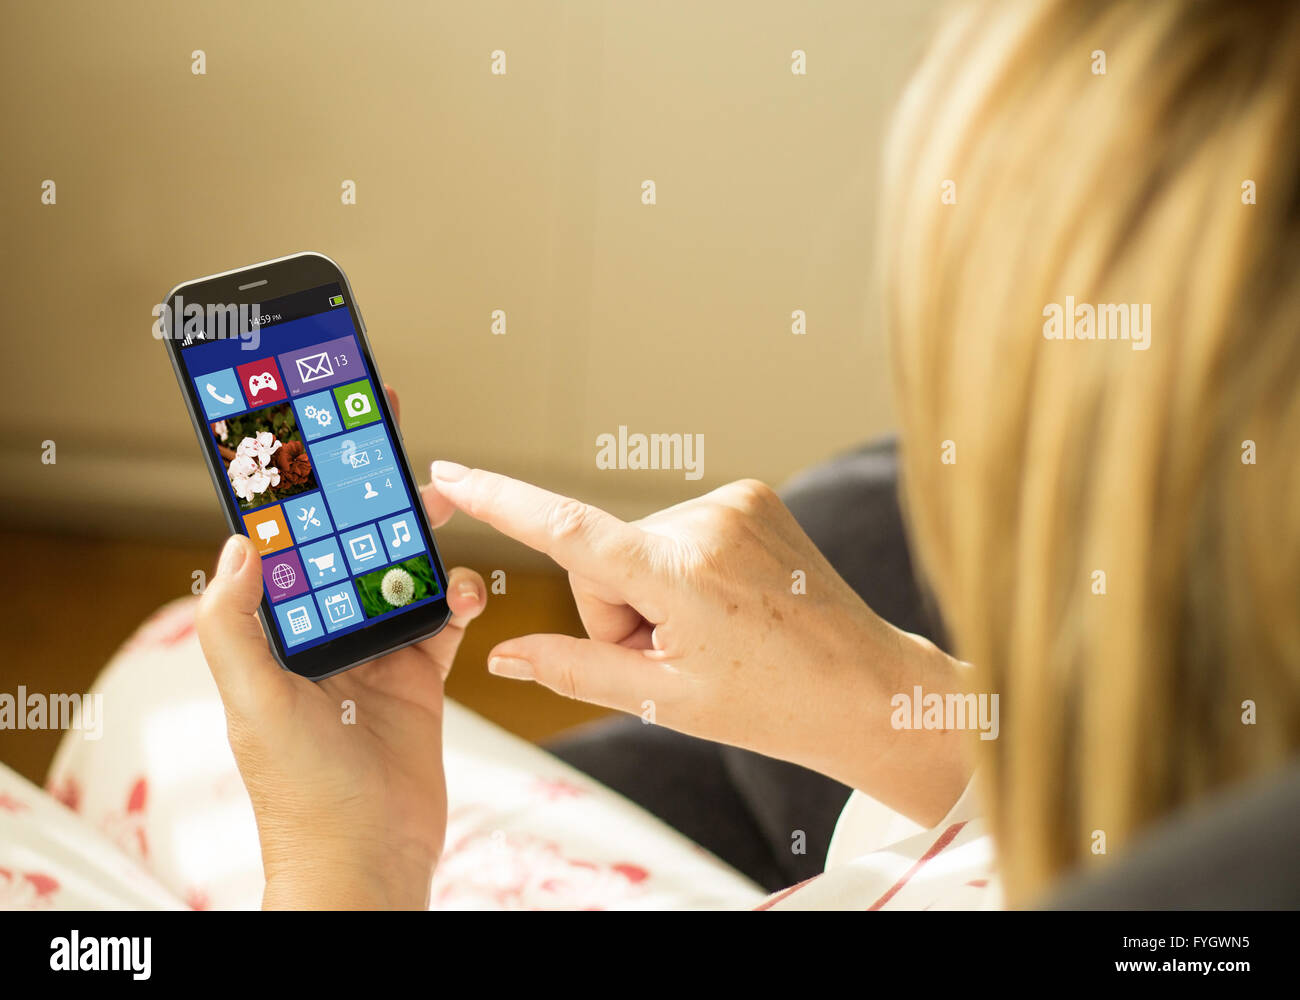 mobility and wireless concept: young woman with a 3d generated smartphone. All screen graphics made up. - Stock Image